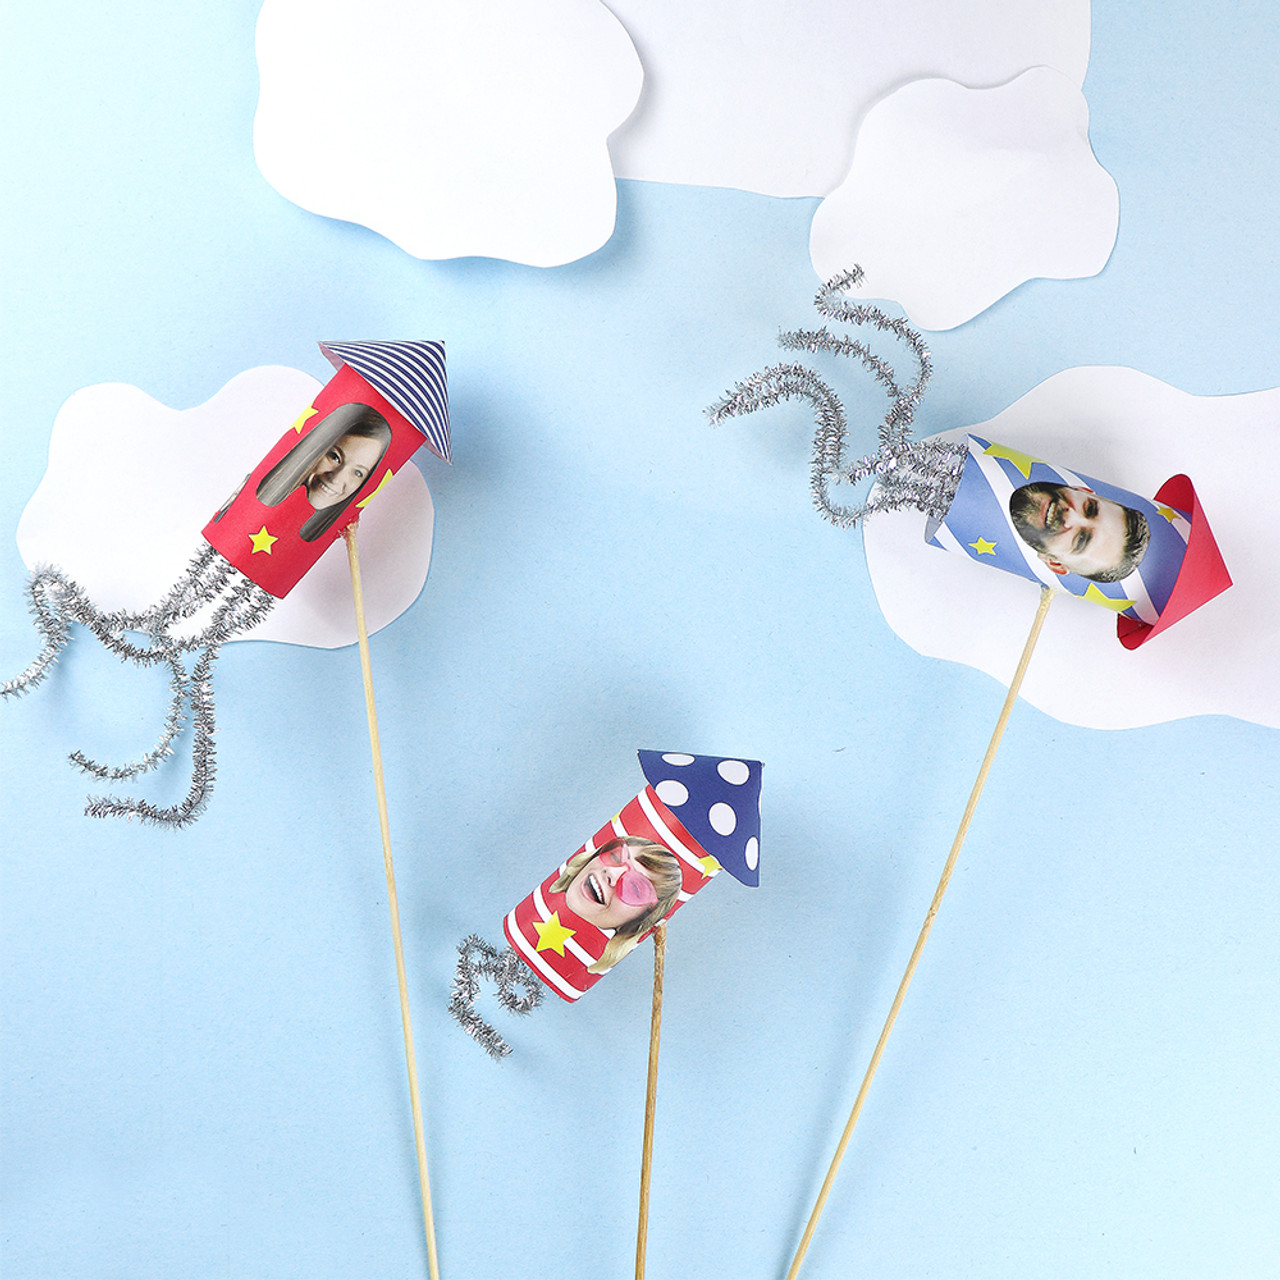 DIY Firecracker Decorations